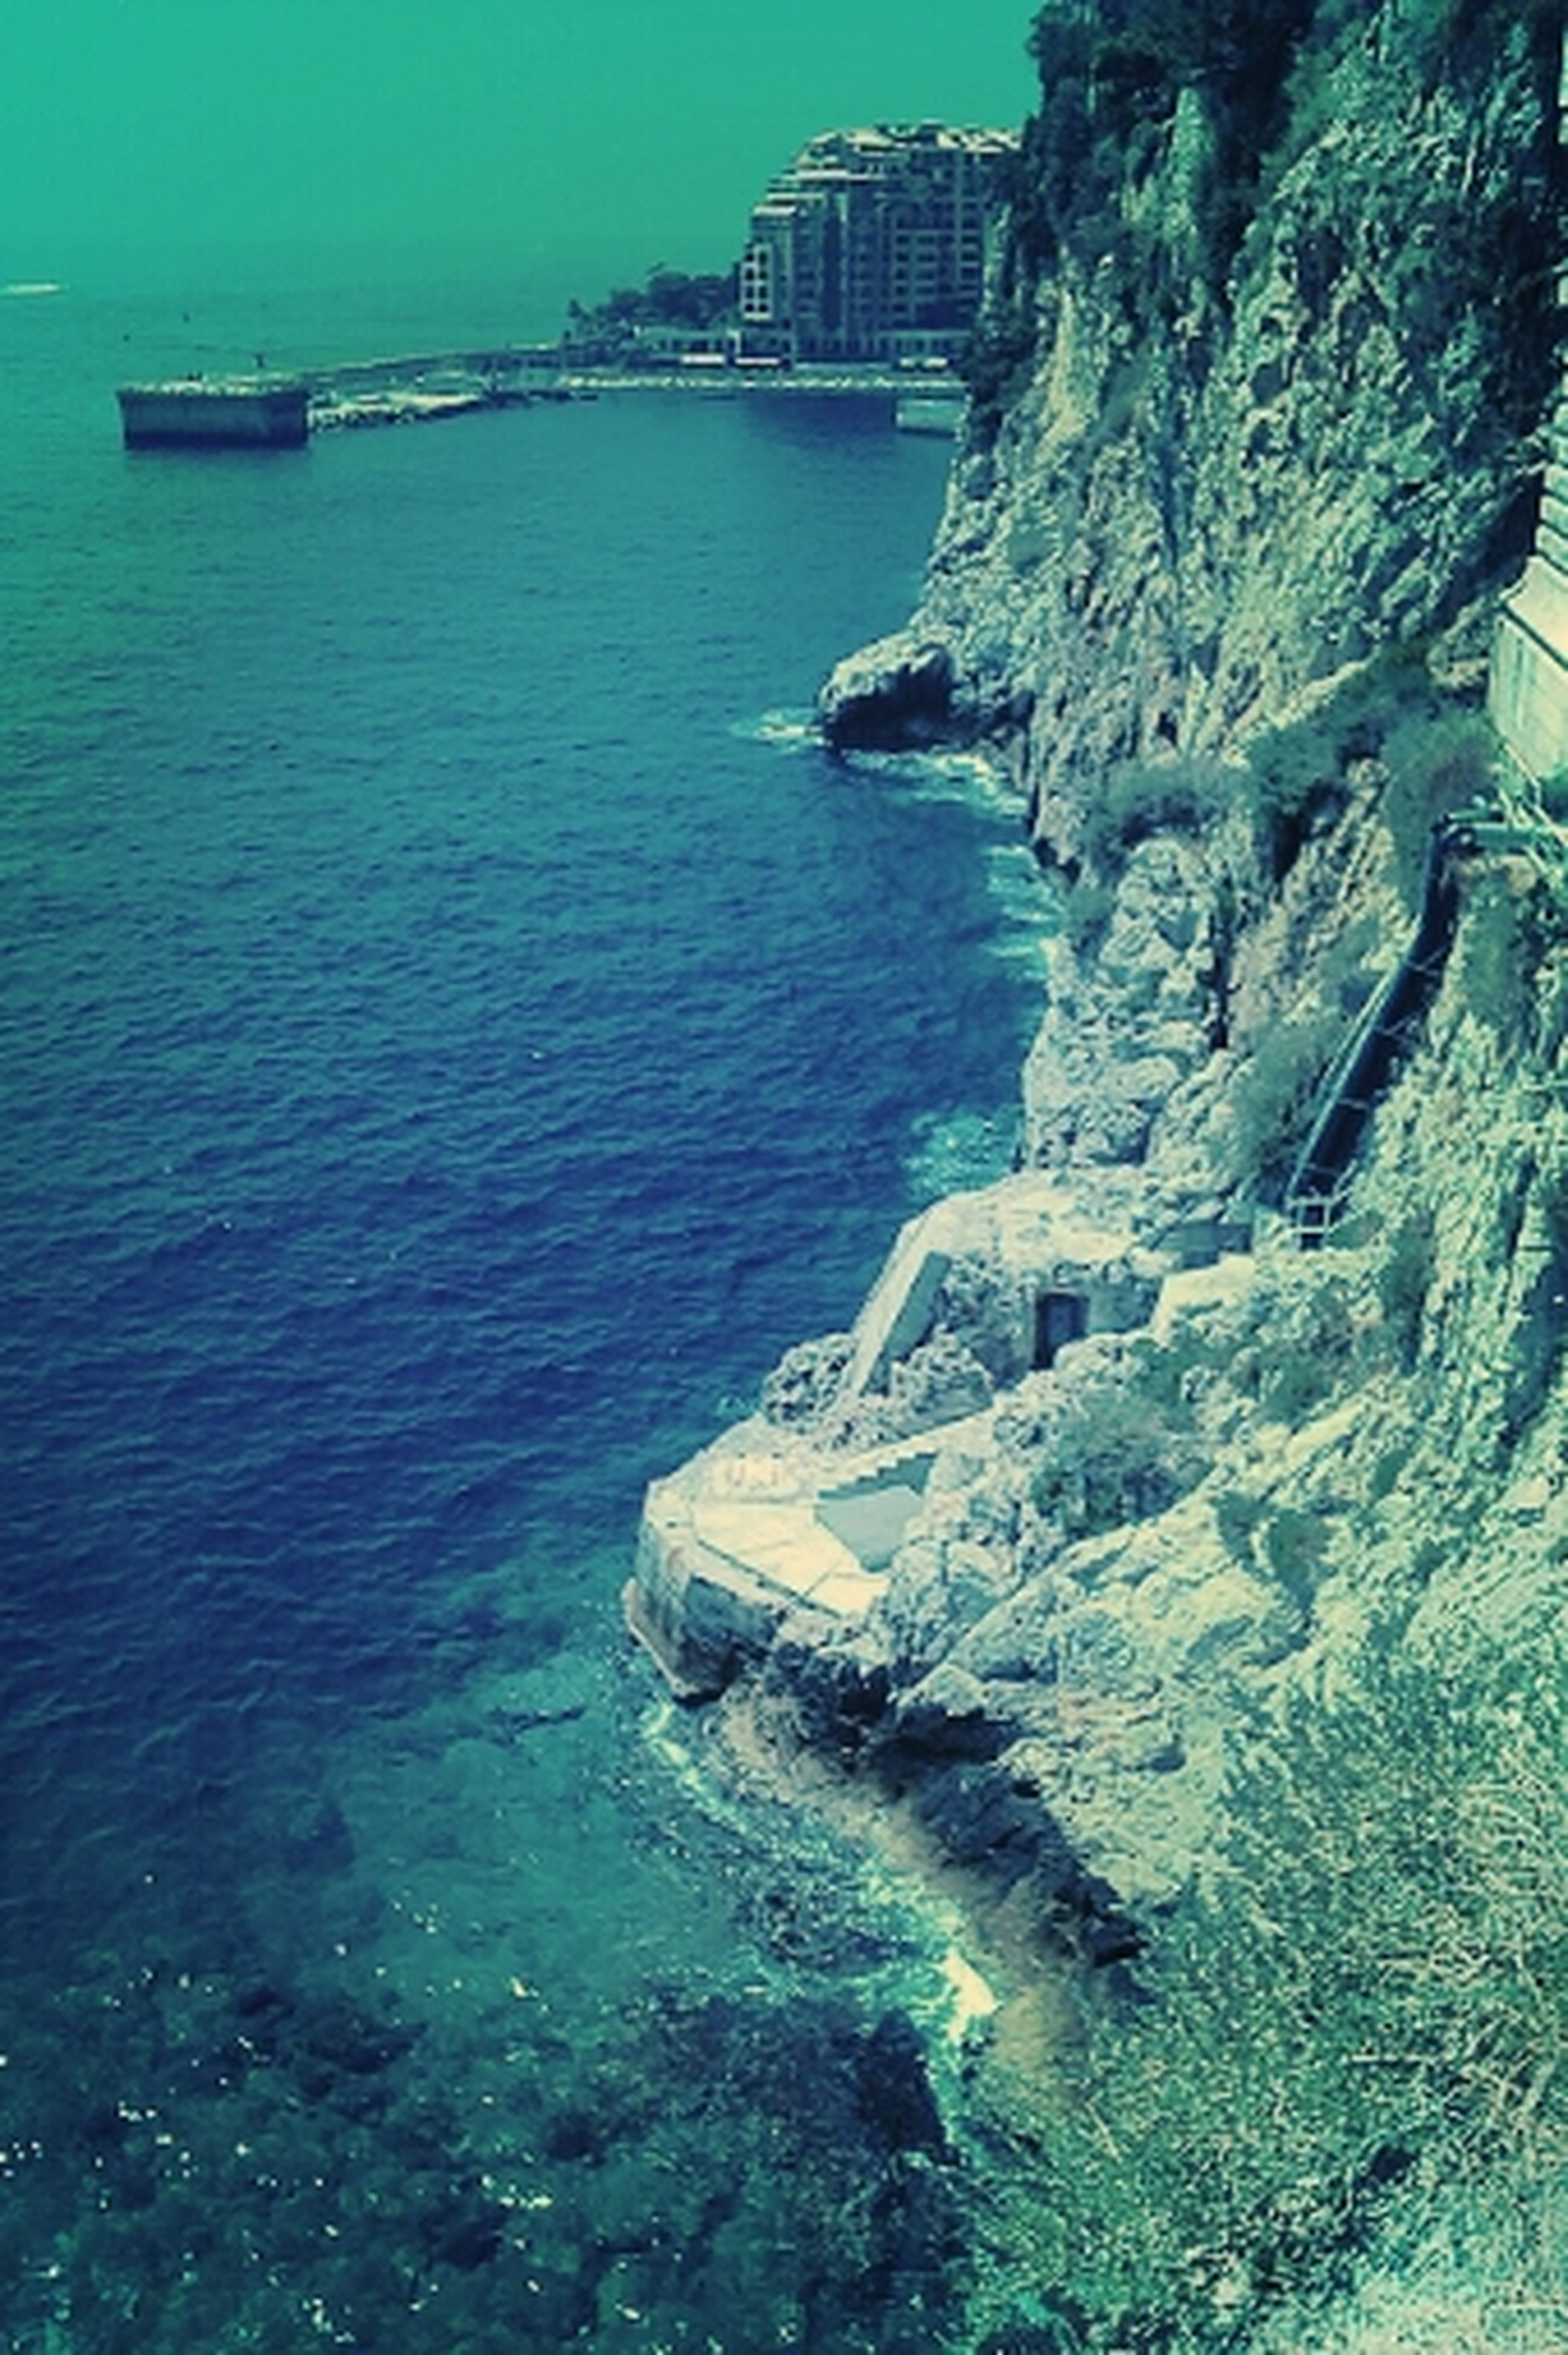 water, sea, waterfront, blue, built structure, nautical vessel, architecture, rock - object, nature, rippled, building exterior, sunlight, transportation, day, turquoise colored, boat, high angle view, outdoors, tranquility, no people